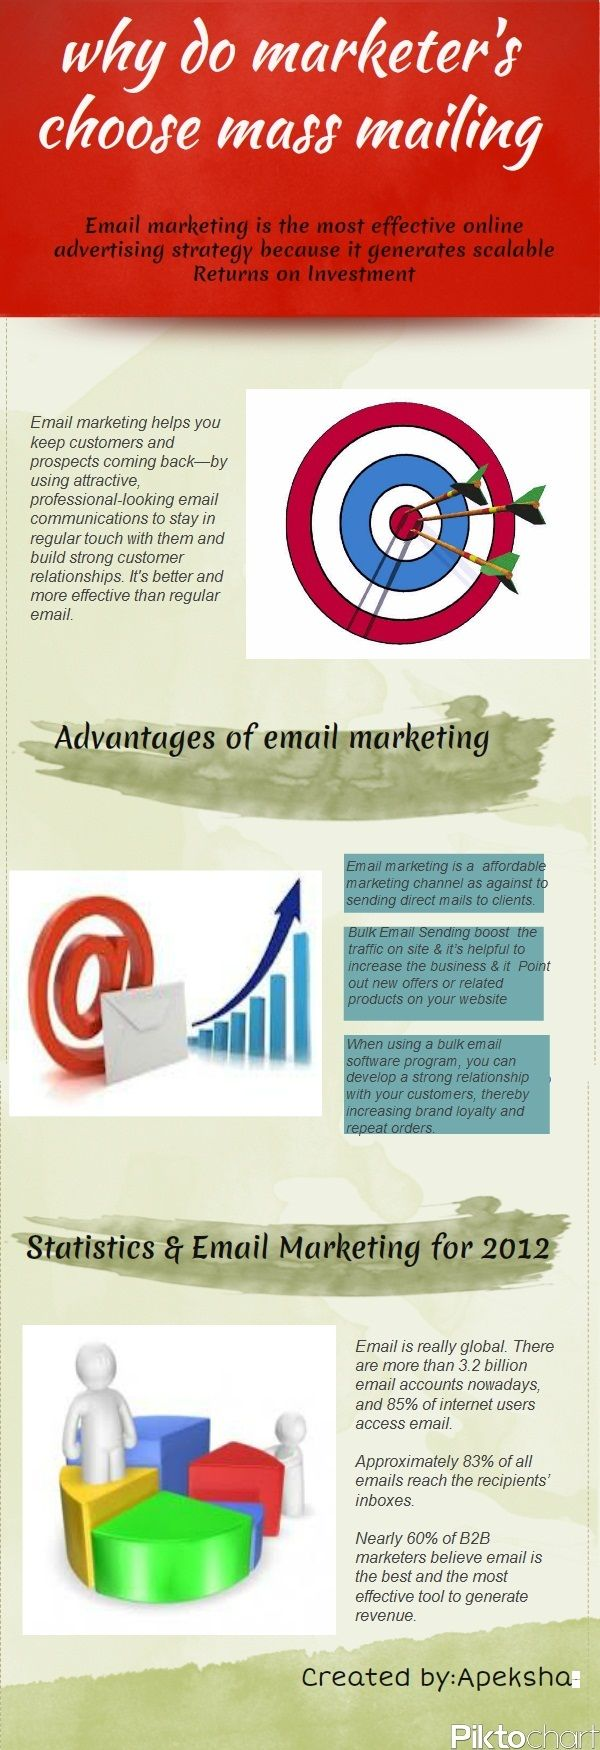 Email marketing is most effective online advertising strategy because its generate returns on investment